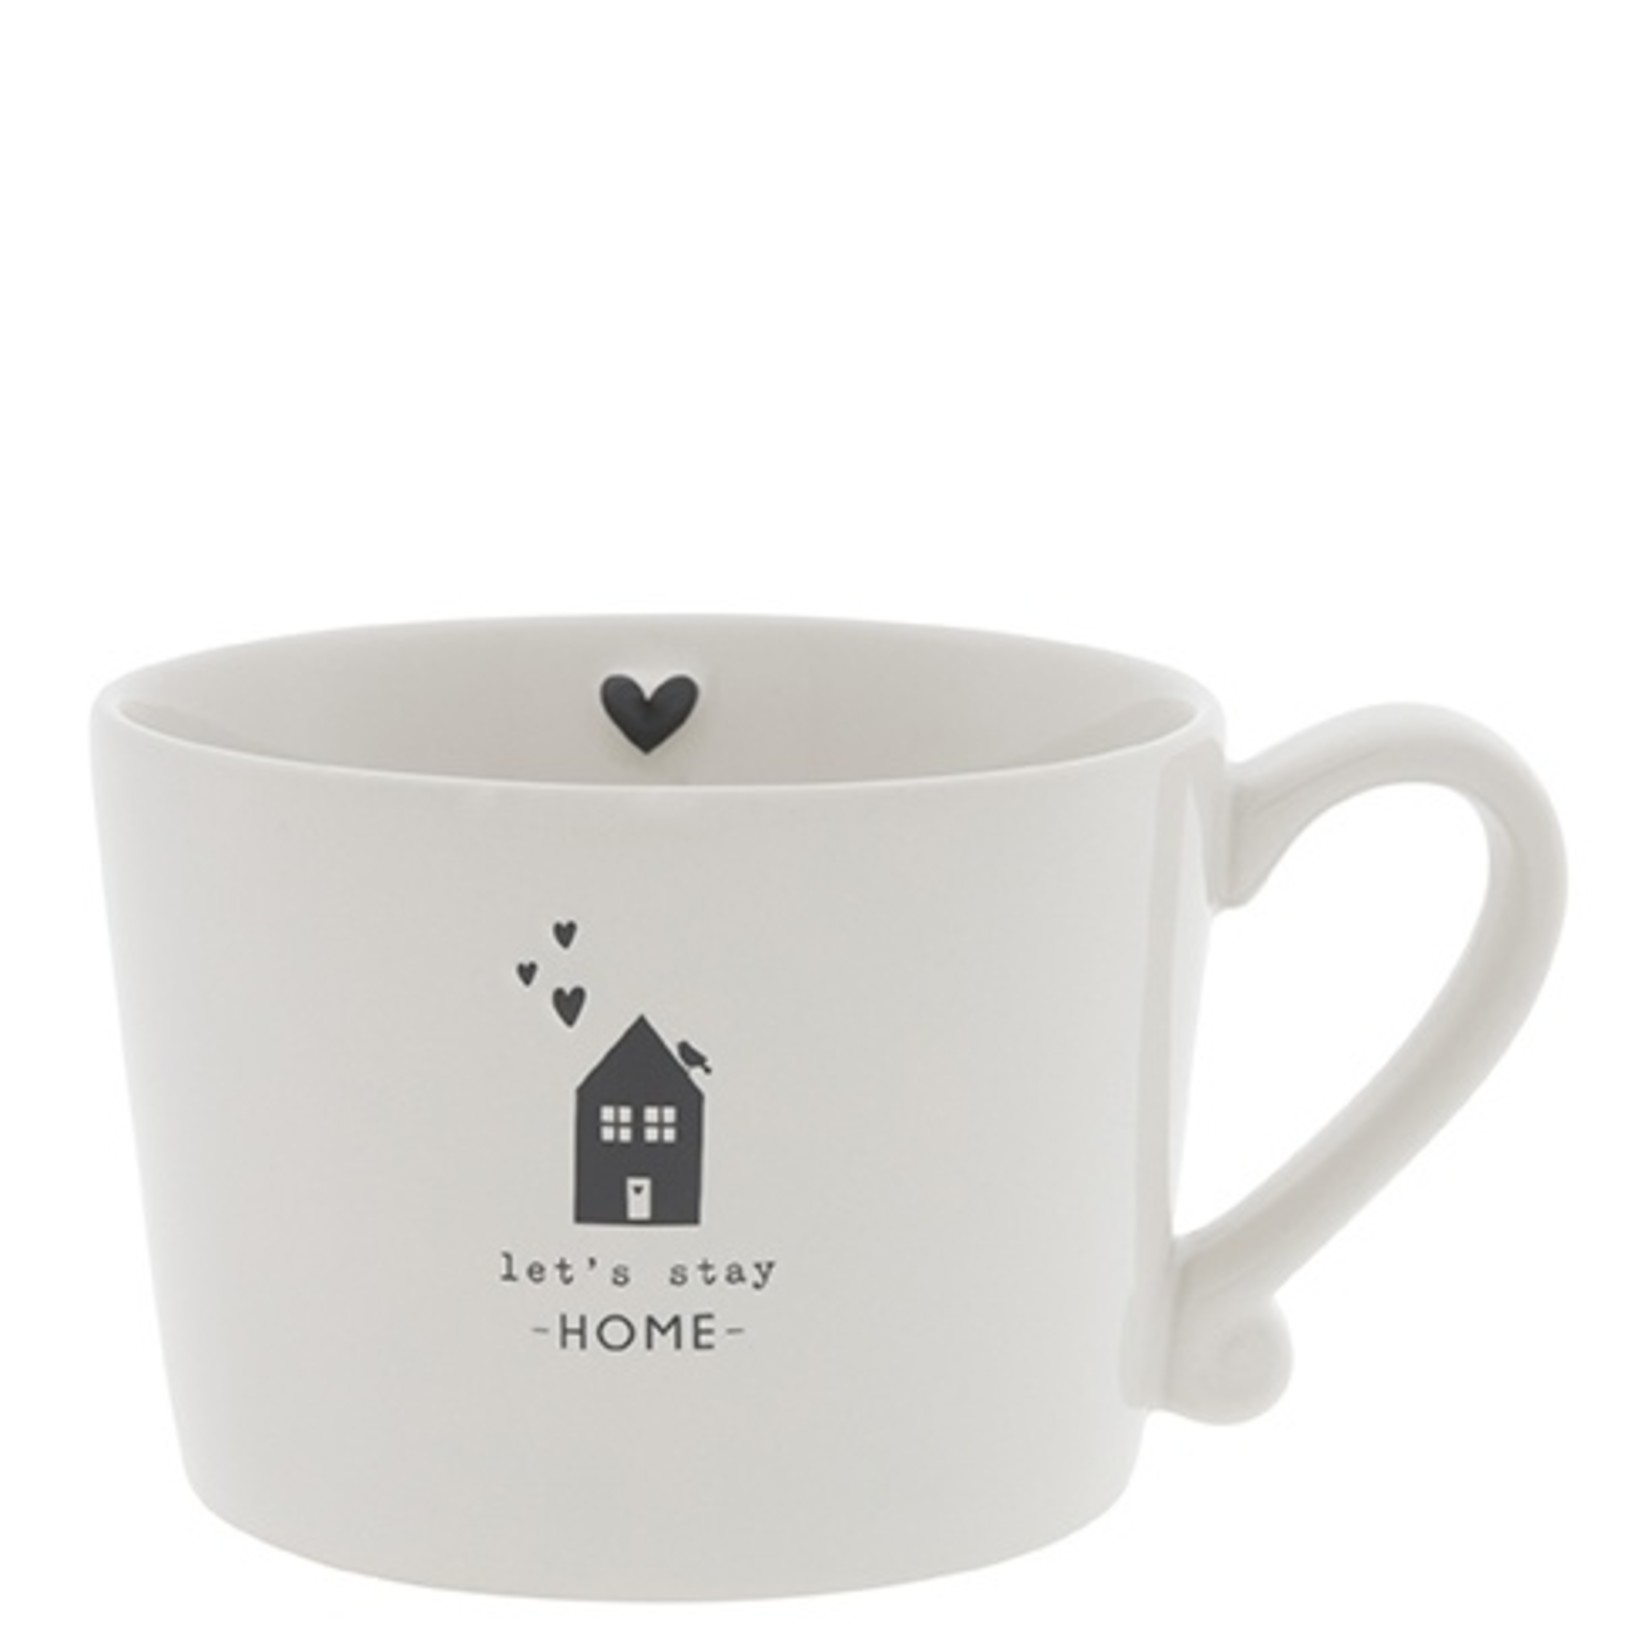 Bastion Collections Kaffeebecher Let's stay home